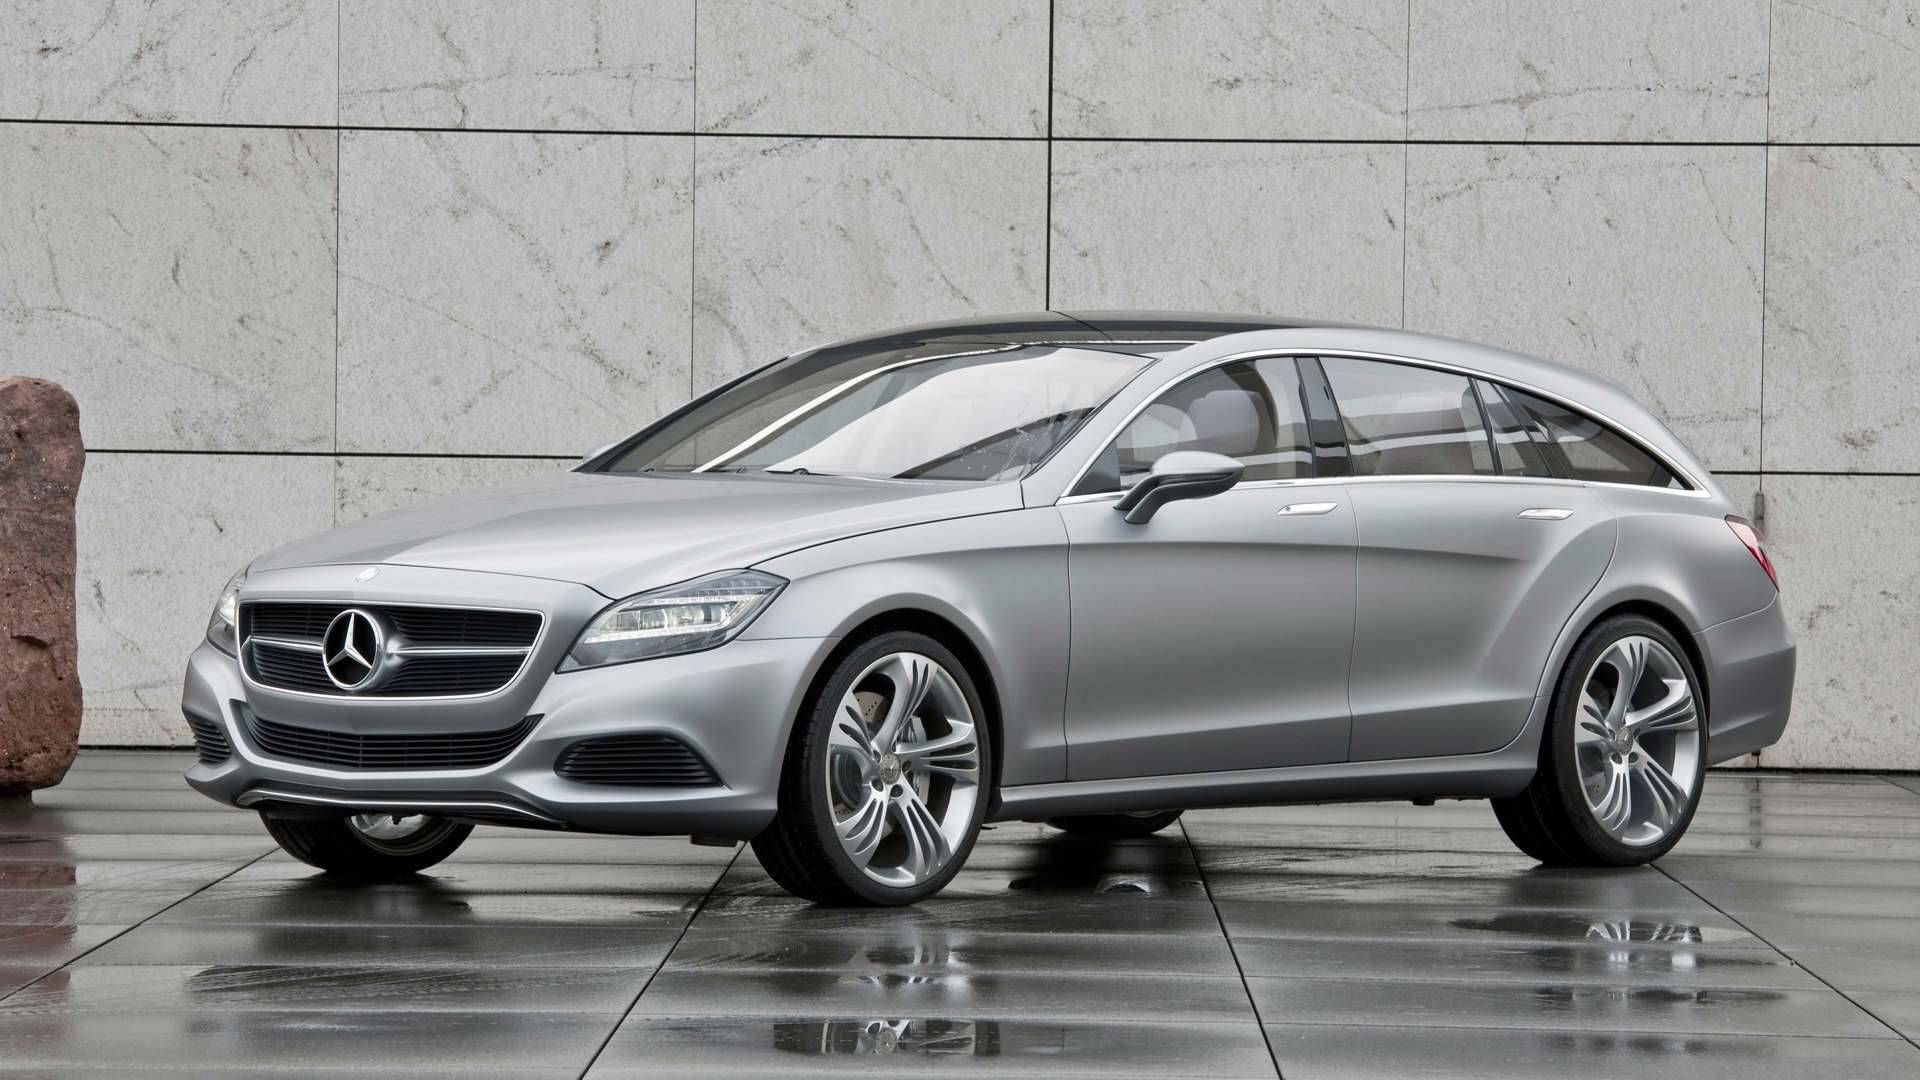 Mercedes benz cars hd wallpapers for Mercedes benz cars images